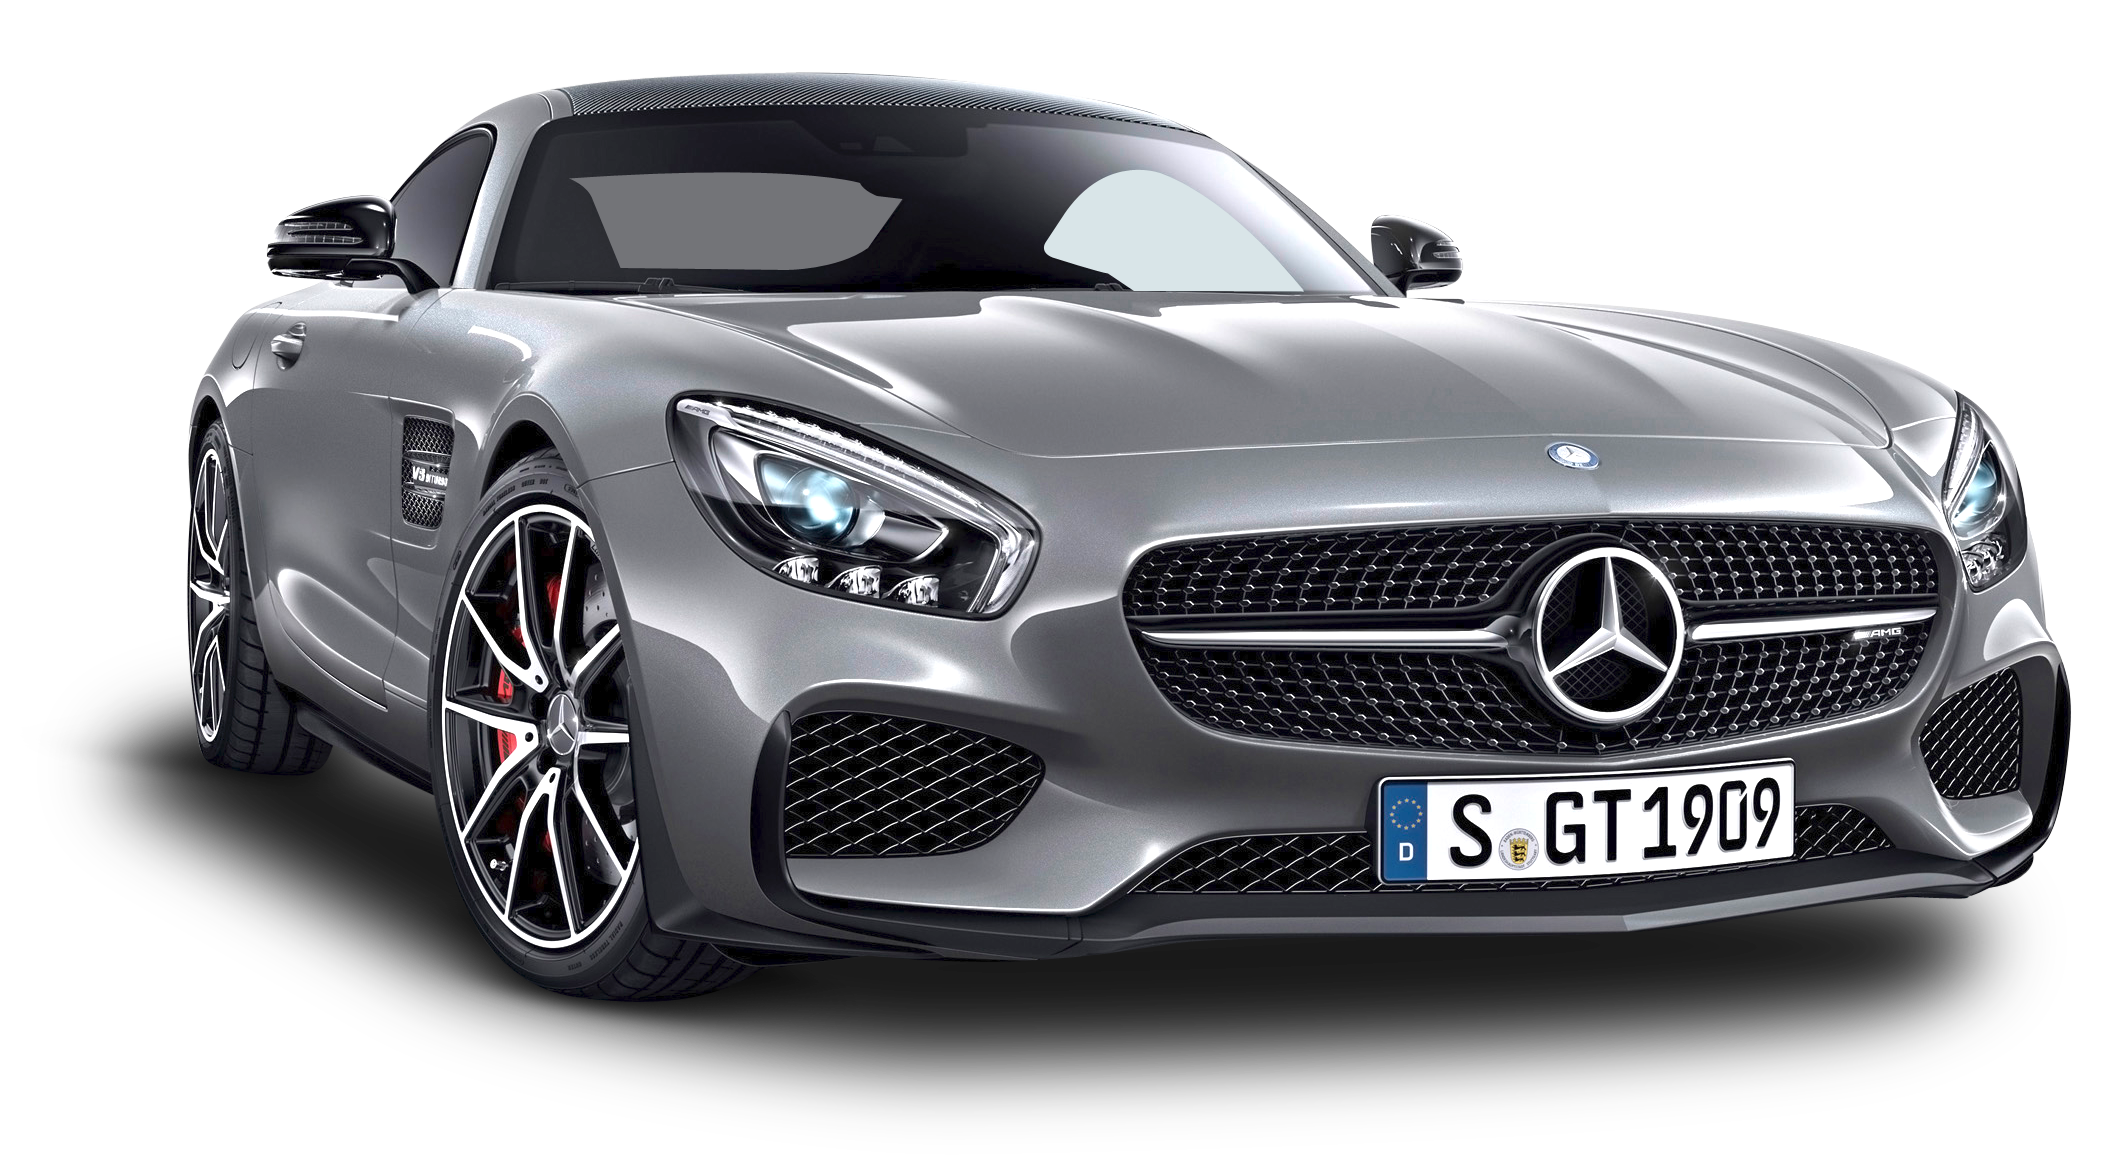 Mercedesamg Png - Download Mercedes AMG GT S Car PNG Image for Free